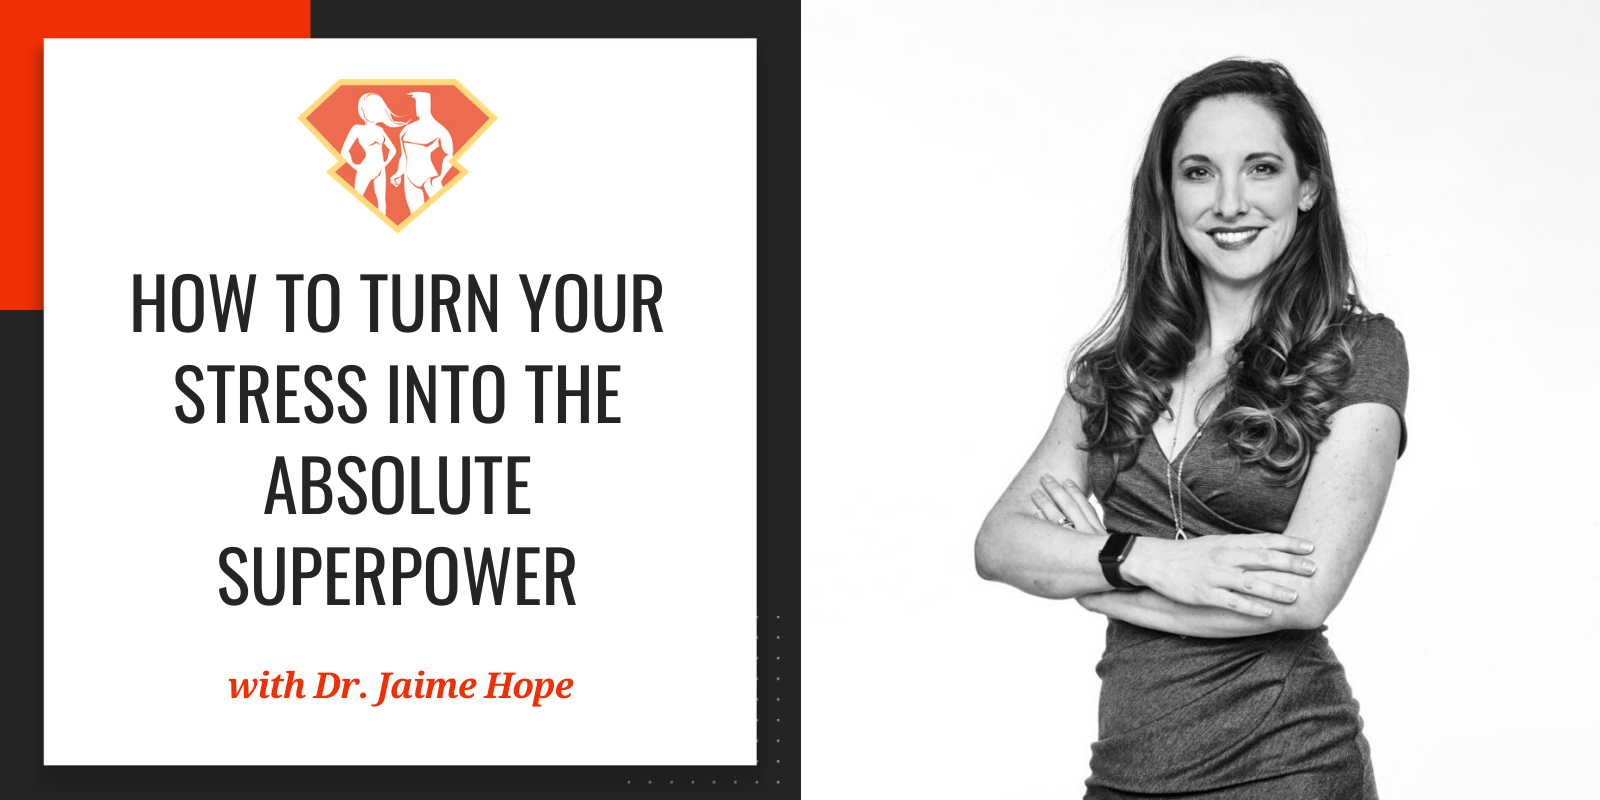 In this episode with Dr. Jaime Hope, we discover everything about the true nature of stress and how we can turn it into a superpower we can utilize.